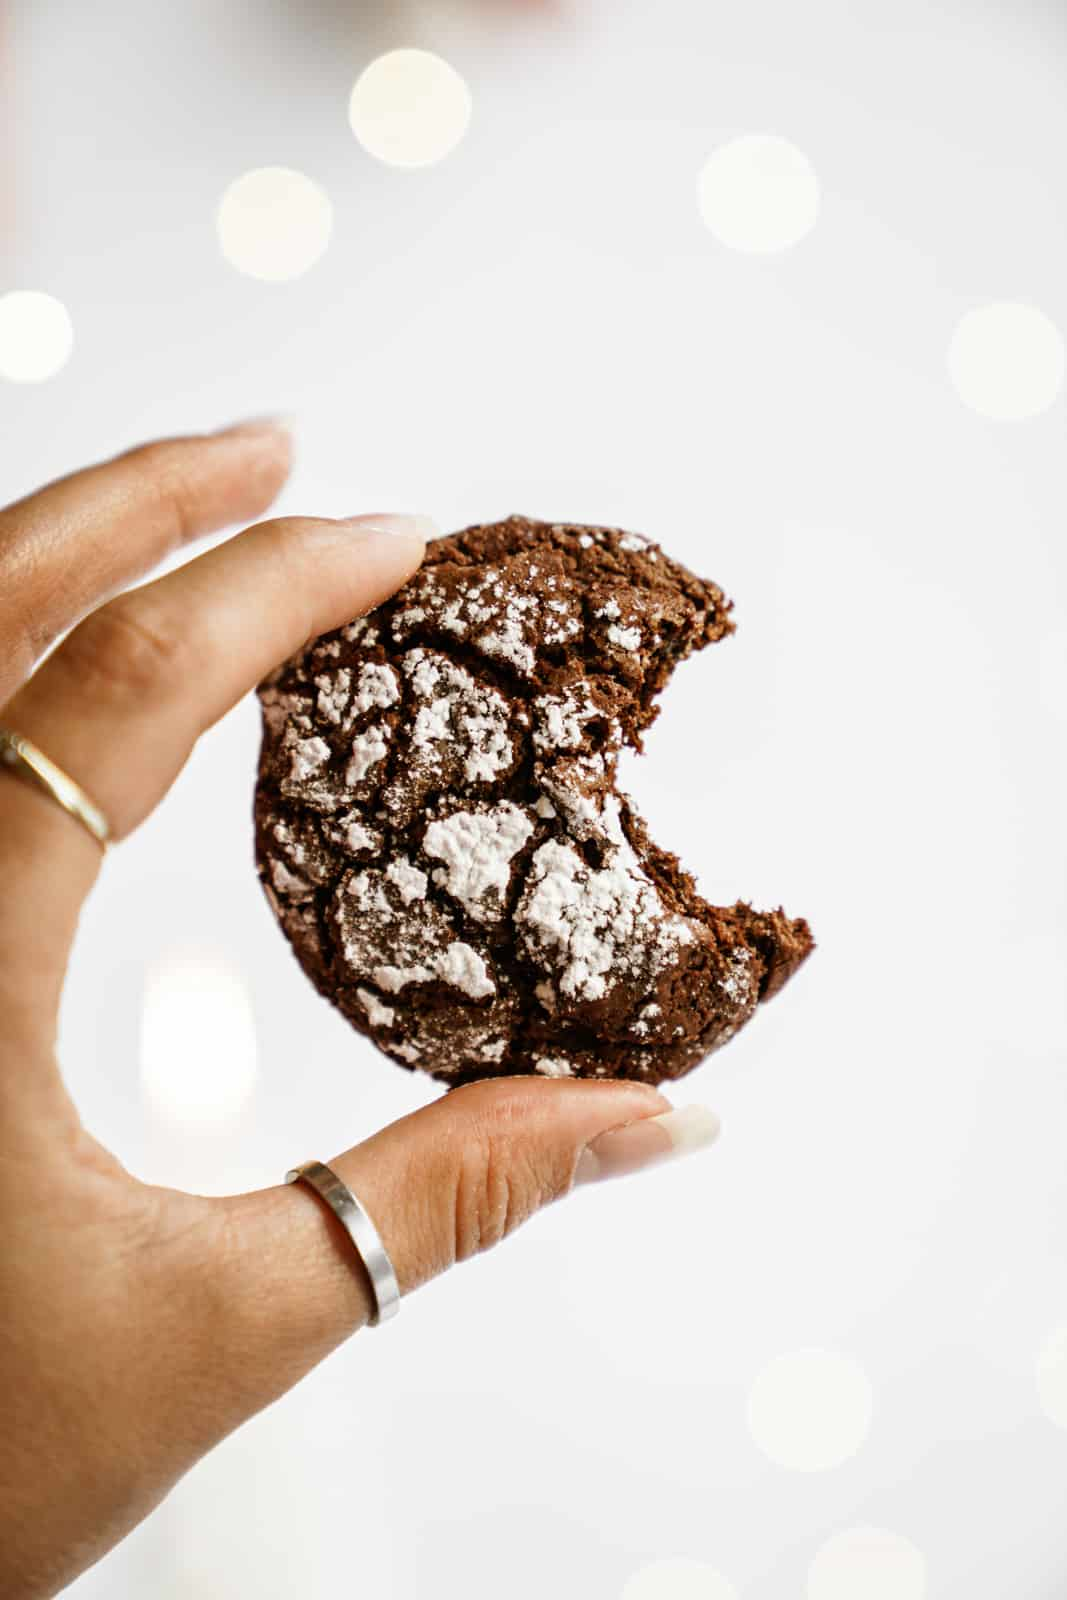 Hand holding a cookie from my Chocolate Crinkle Cookie Recipe with a bite out of it.